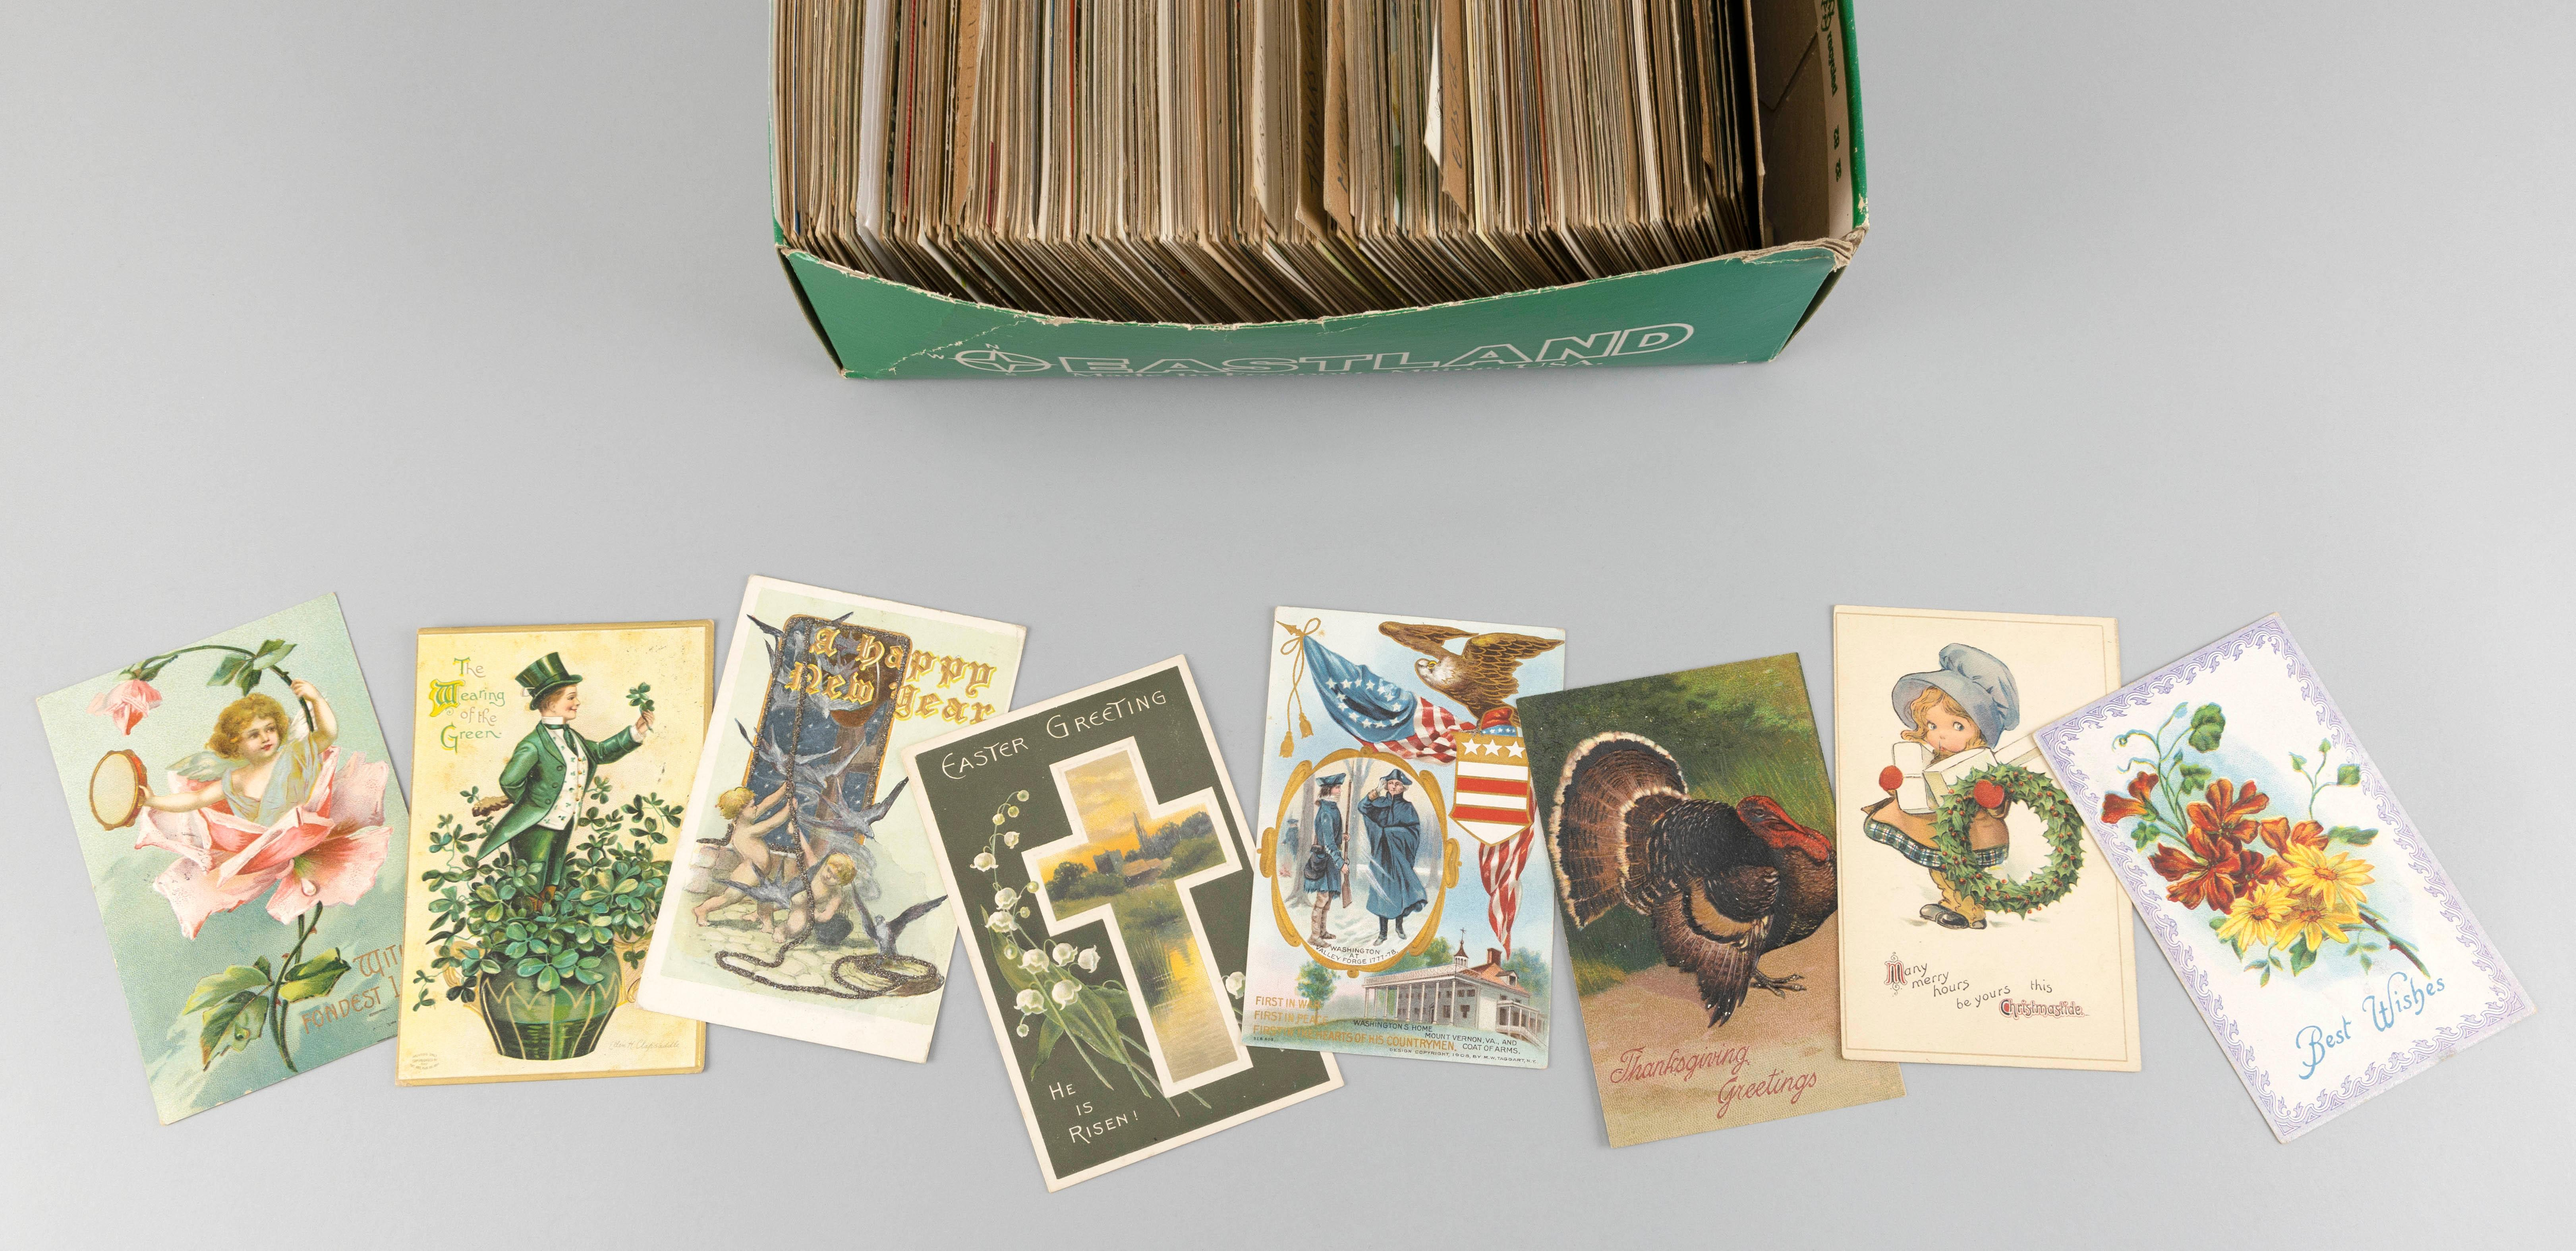 (TOPICAL: HOLIDAYS AND GREETINGS) APPROX. 425 POSTCARDS Includes: New Year's, Easter, Christmas, Thanksgiving and more. Publishers i...